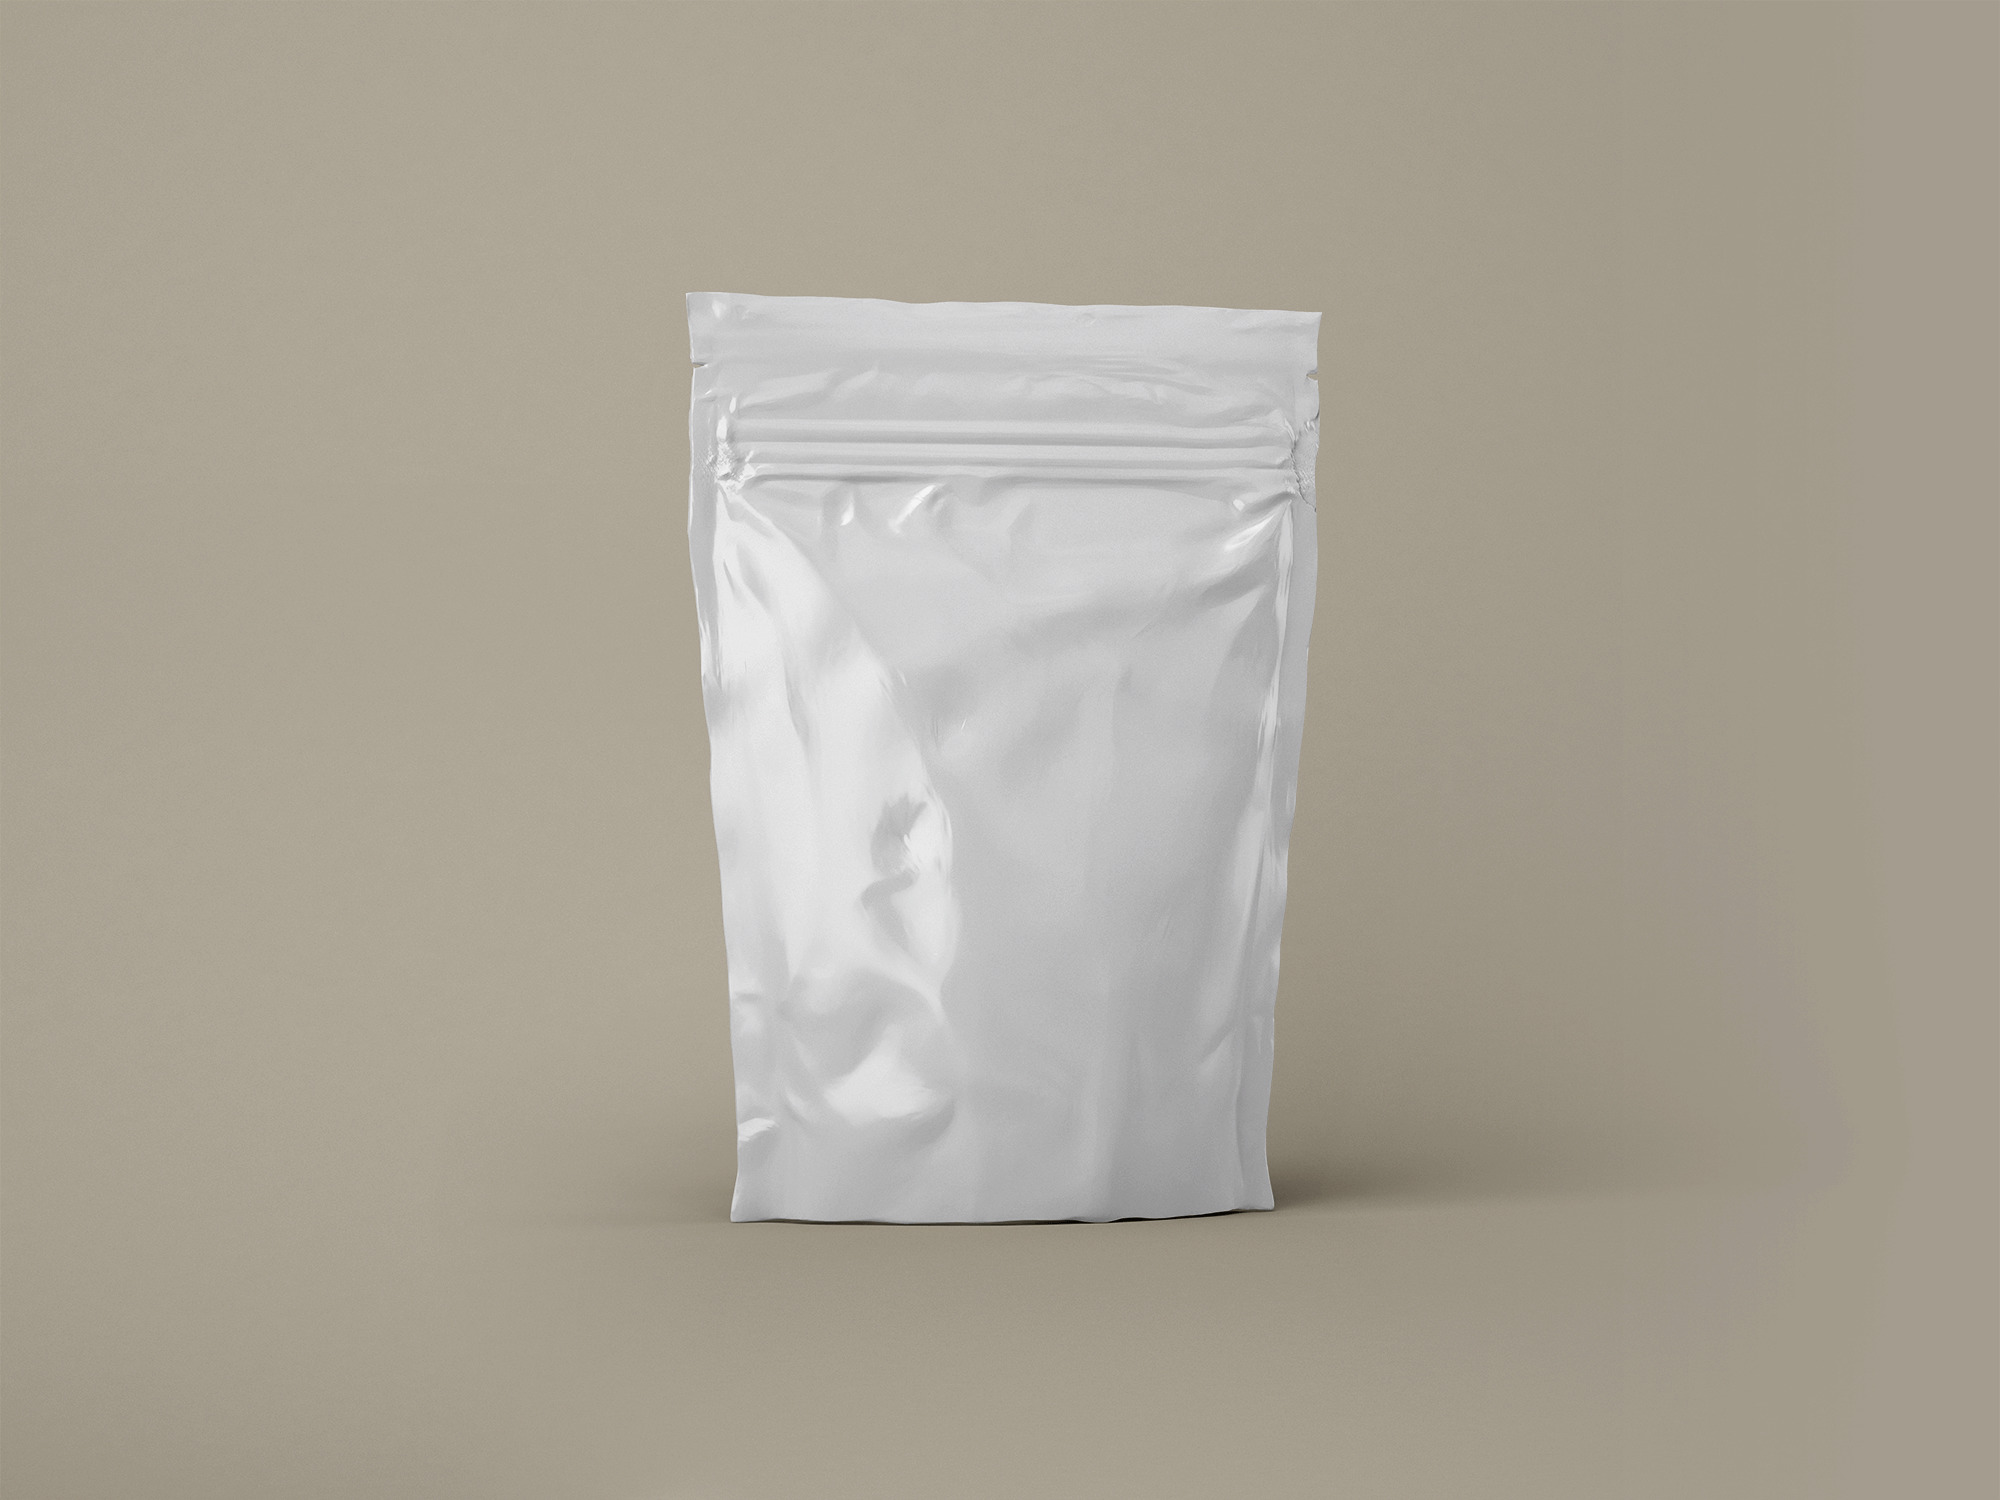 Free Sealed Pouch Pack Mockup